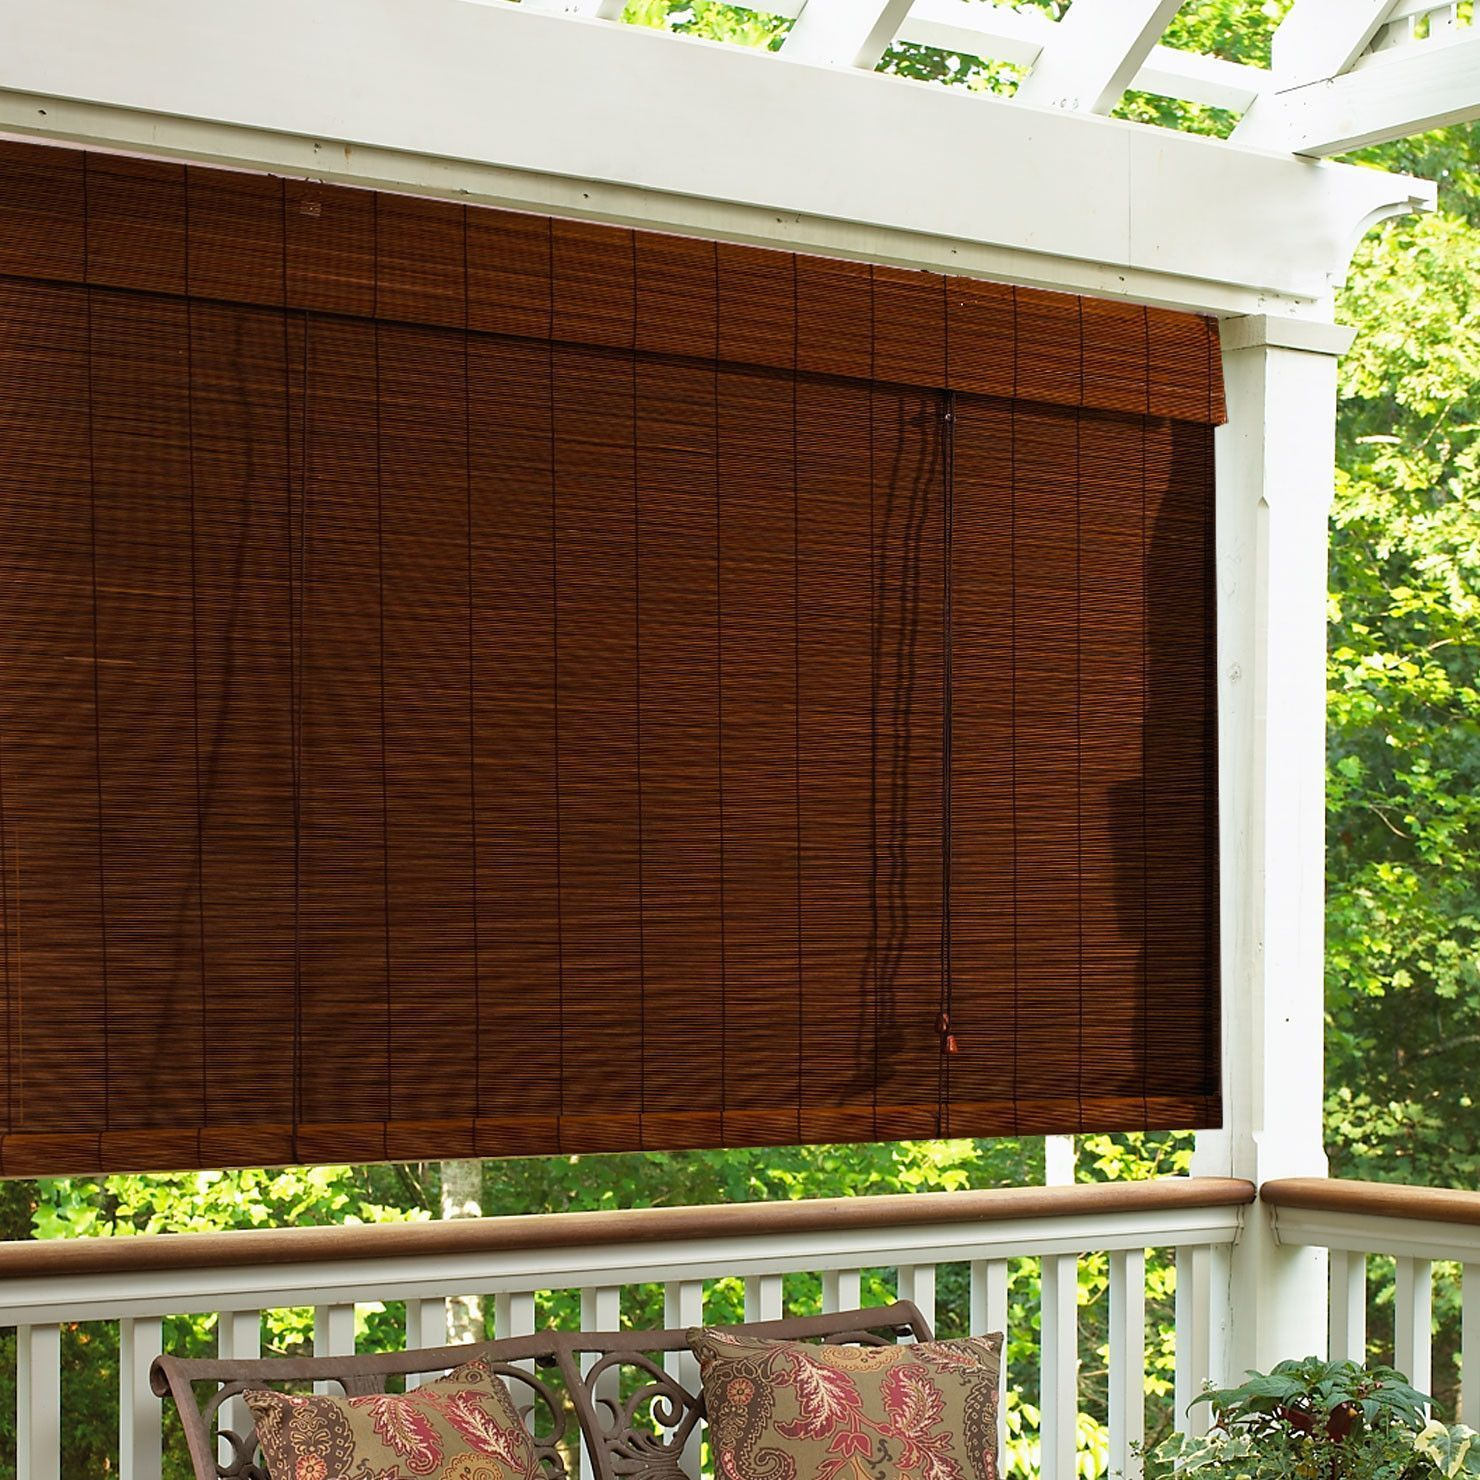 Imperial Matchstick Bamboo Blind Whiteblinds Verticalblindsart Outdoor Blinds Patio Blinds Blinds Design